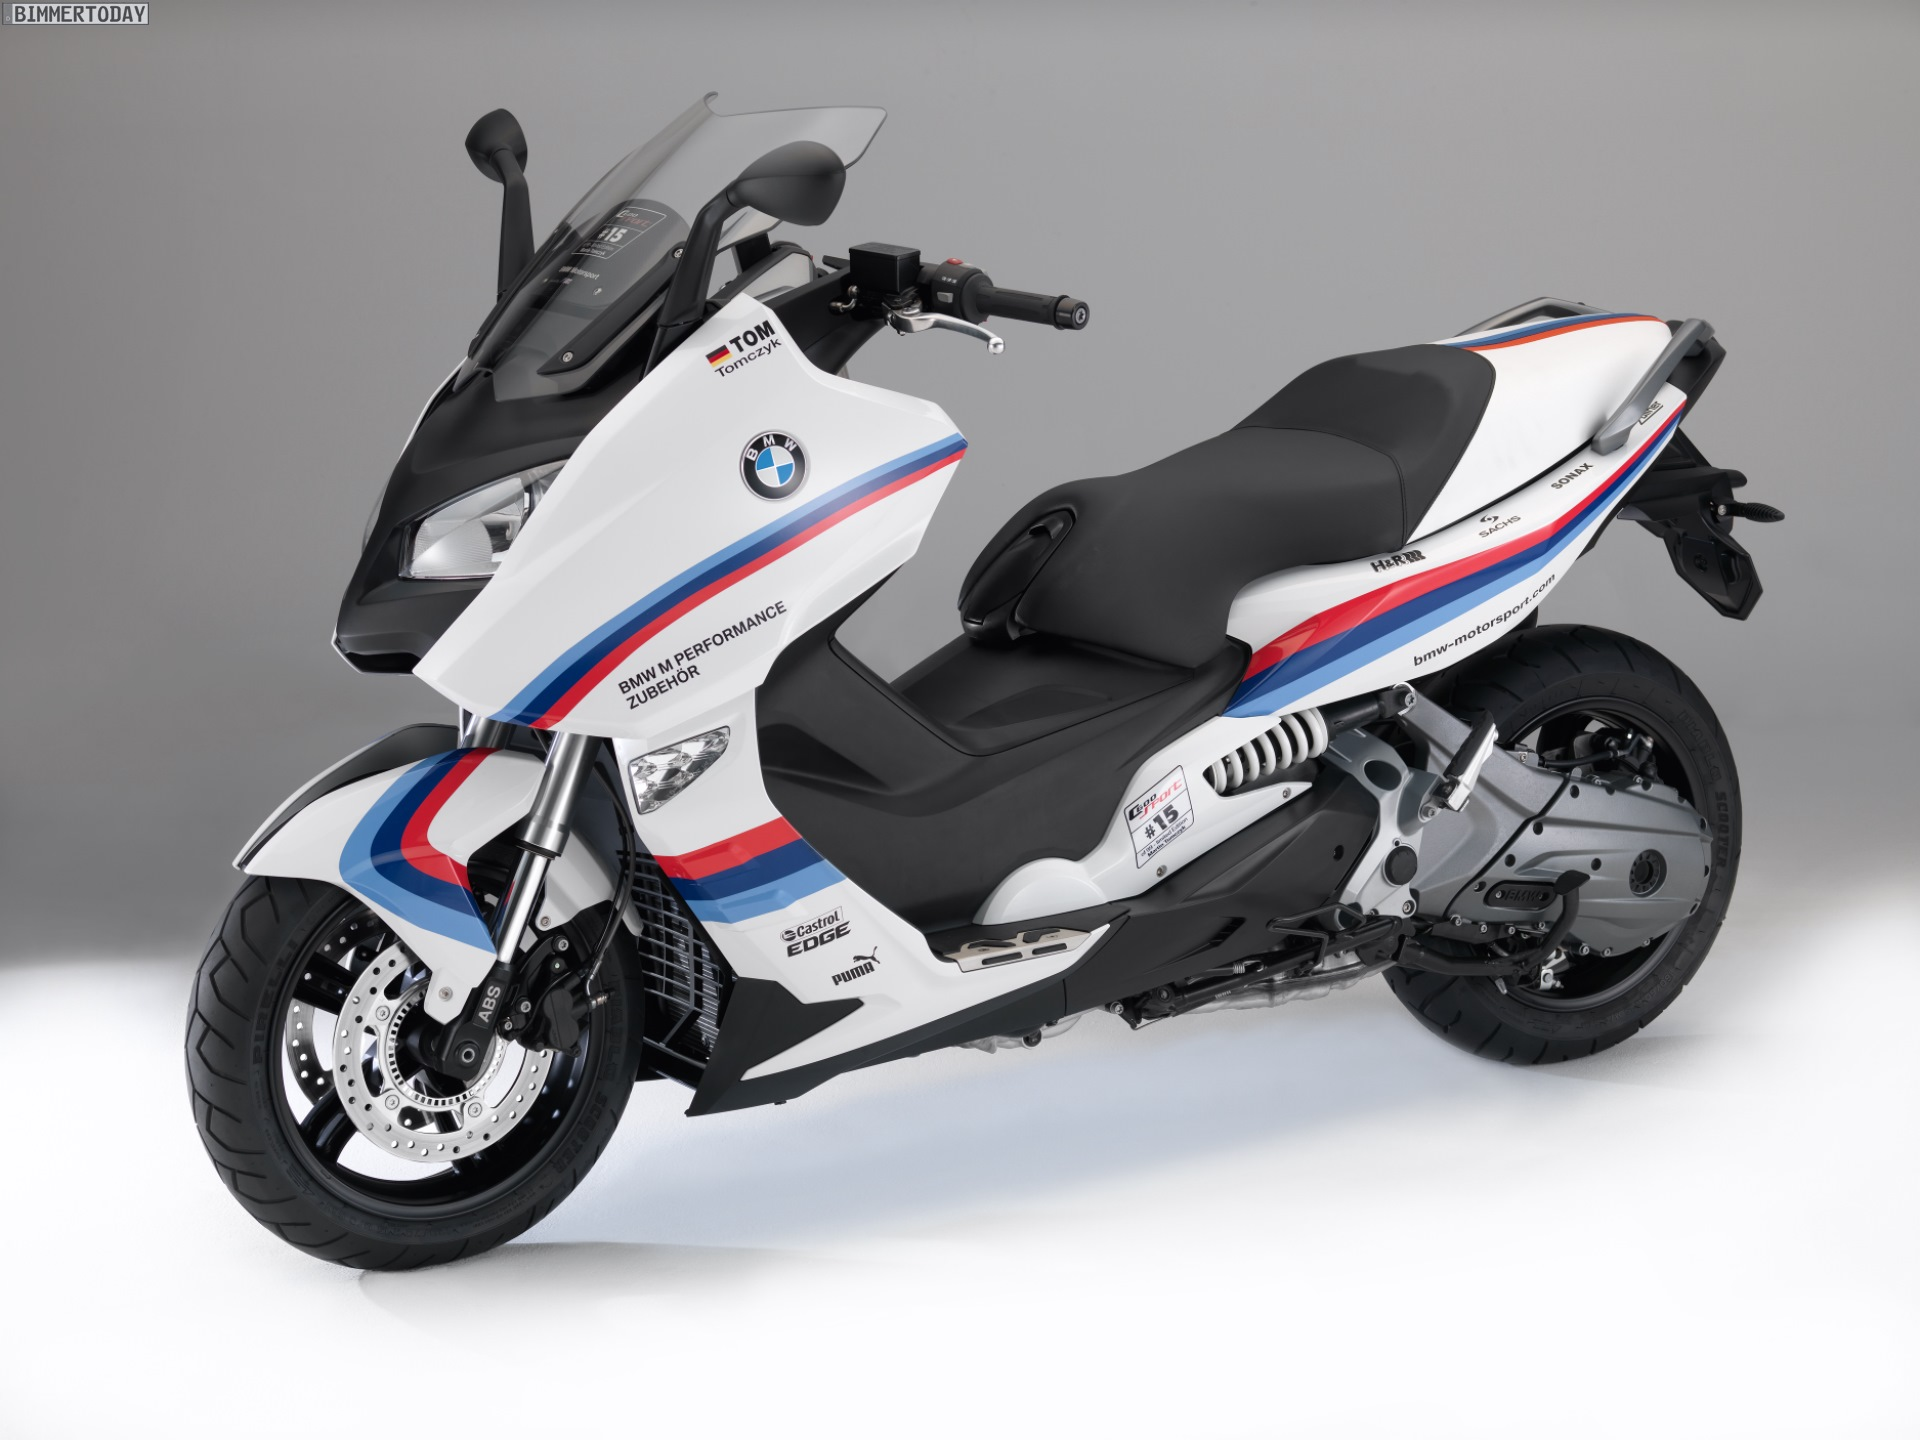 bmw c 600 sport se motorsport maxi da corsa. Black Bedroom Furniture Sets. Home Design Ideas